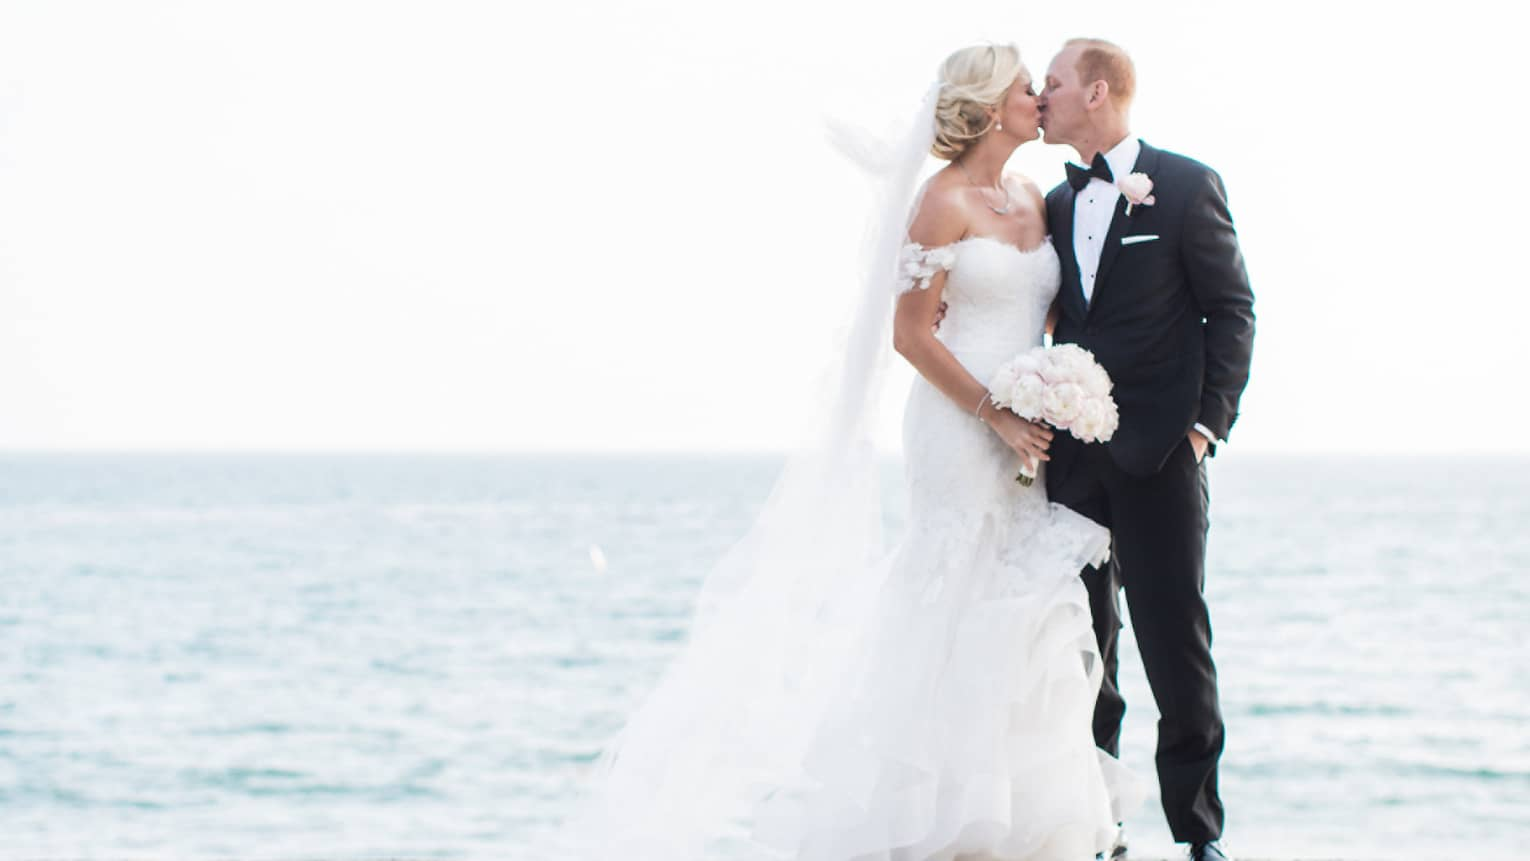 Bride and groom kiss in front of ocean